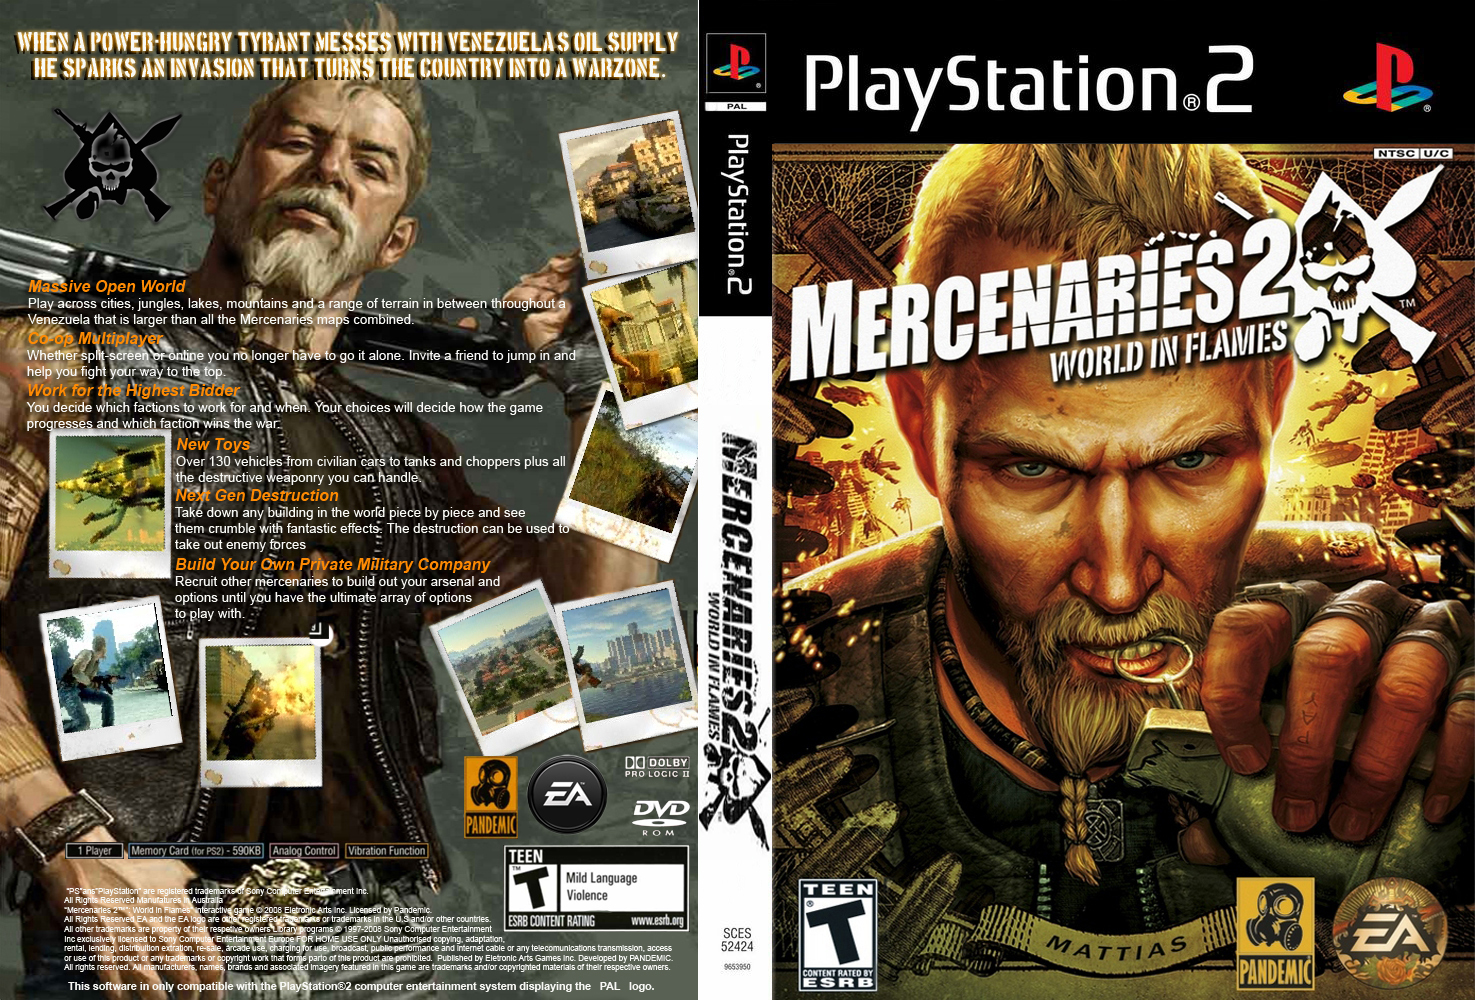 Mercenaries2WorldinFlames